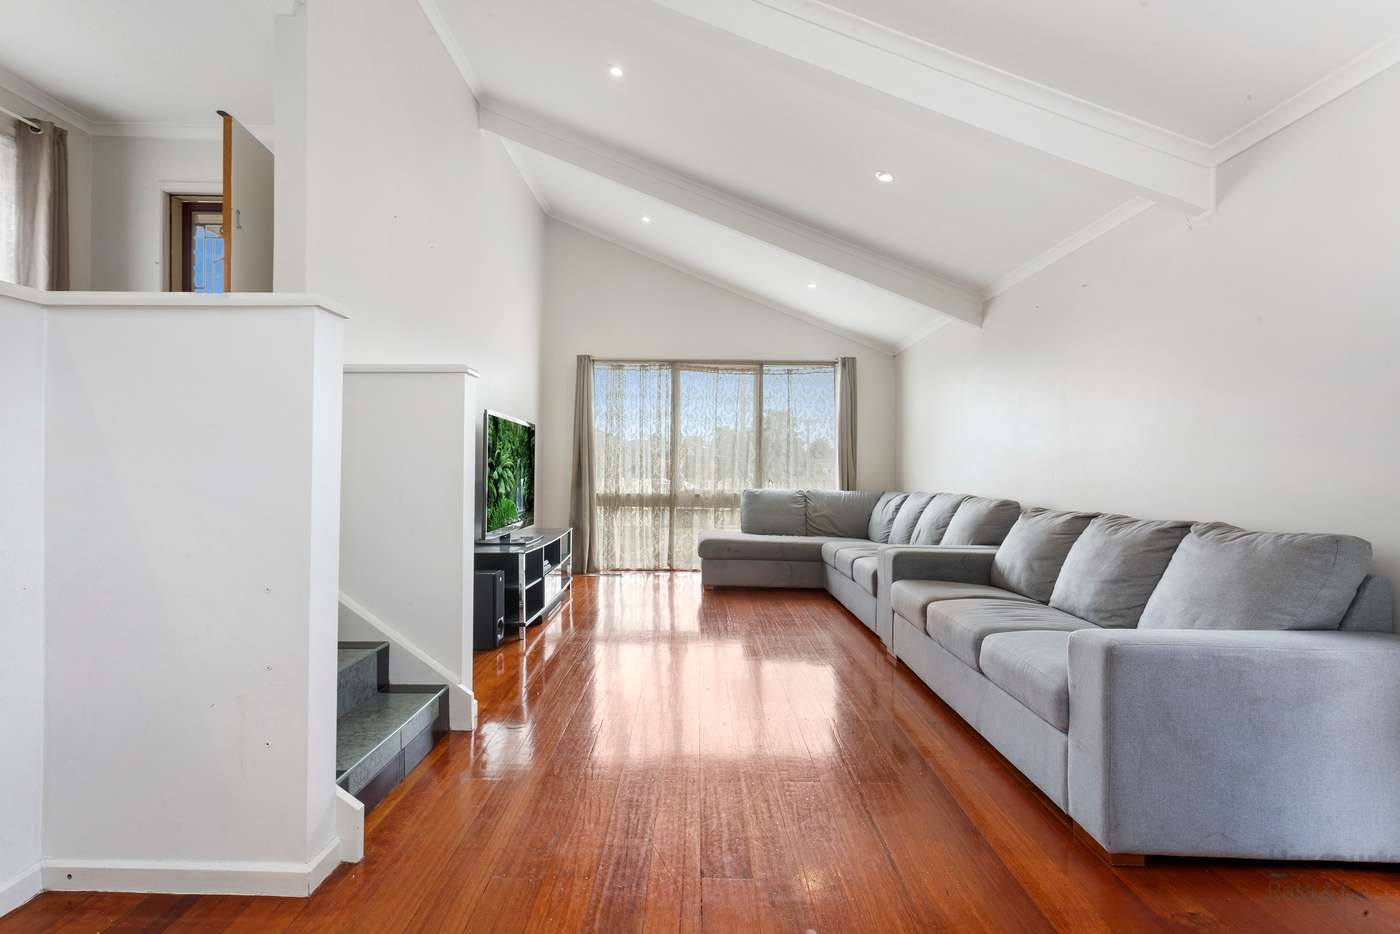 Fifth view of Homely house listing, 13 Touhey Avenue, Epping VIC 3076